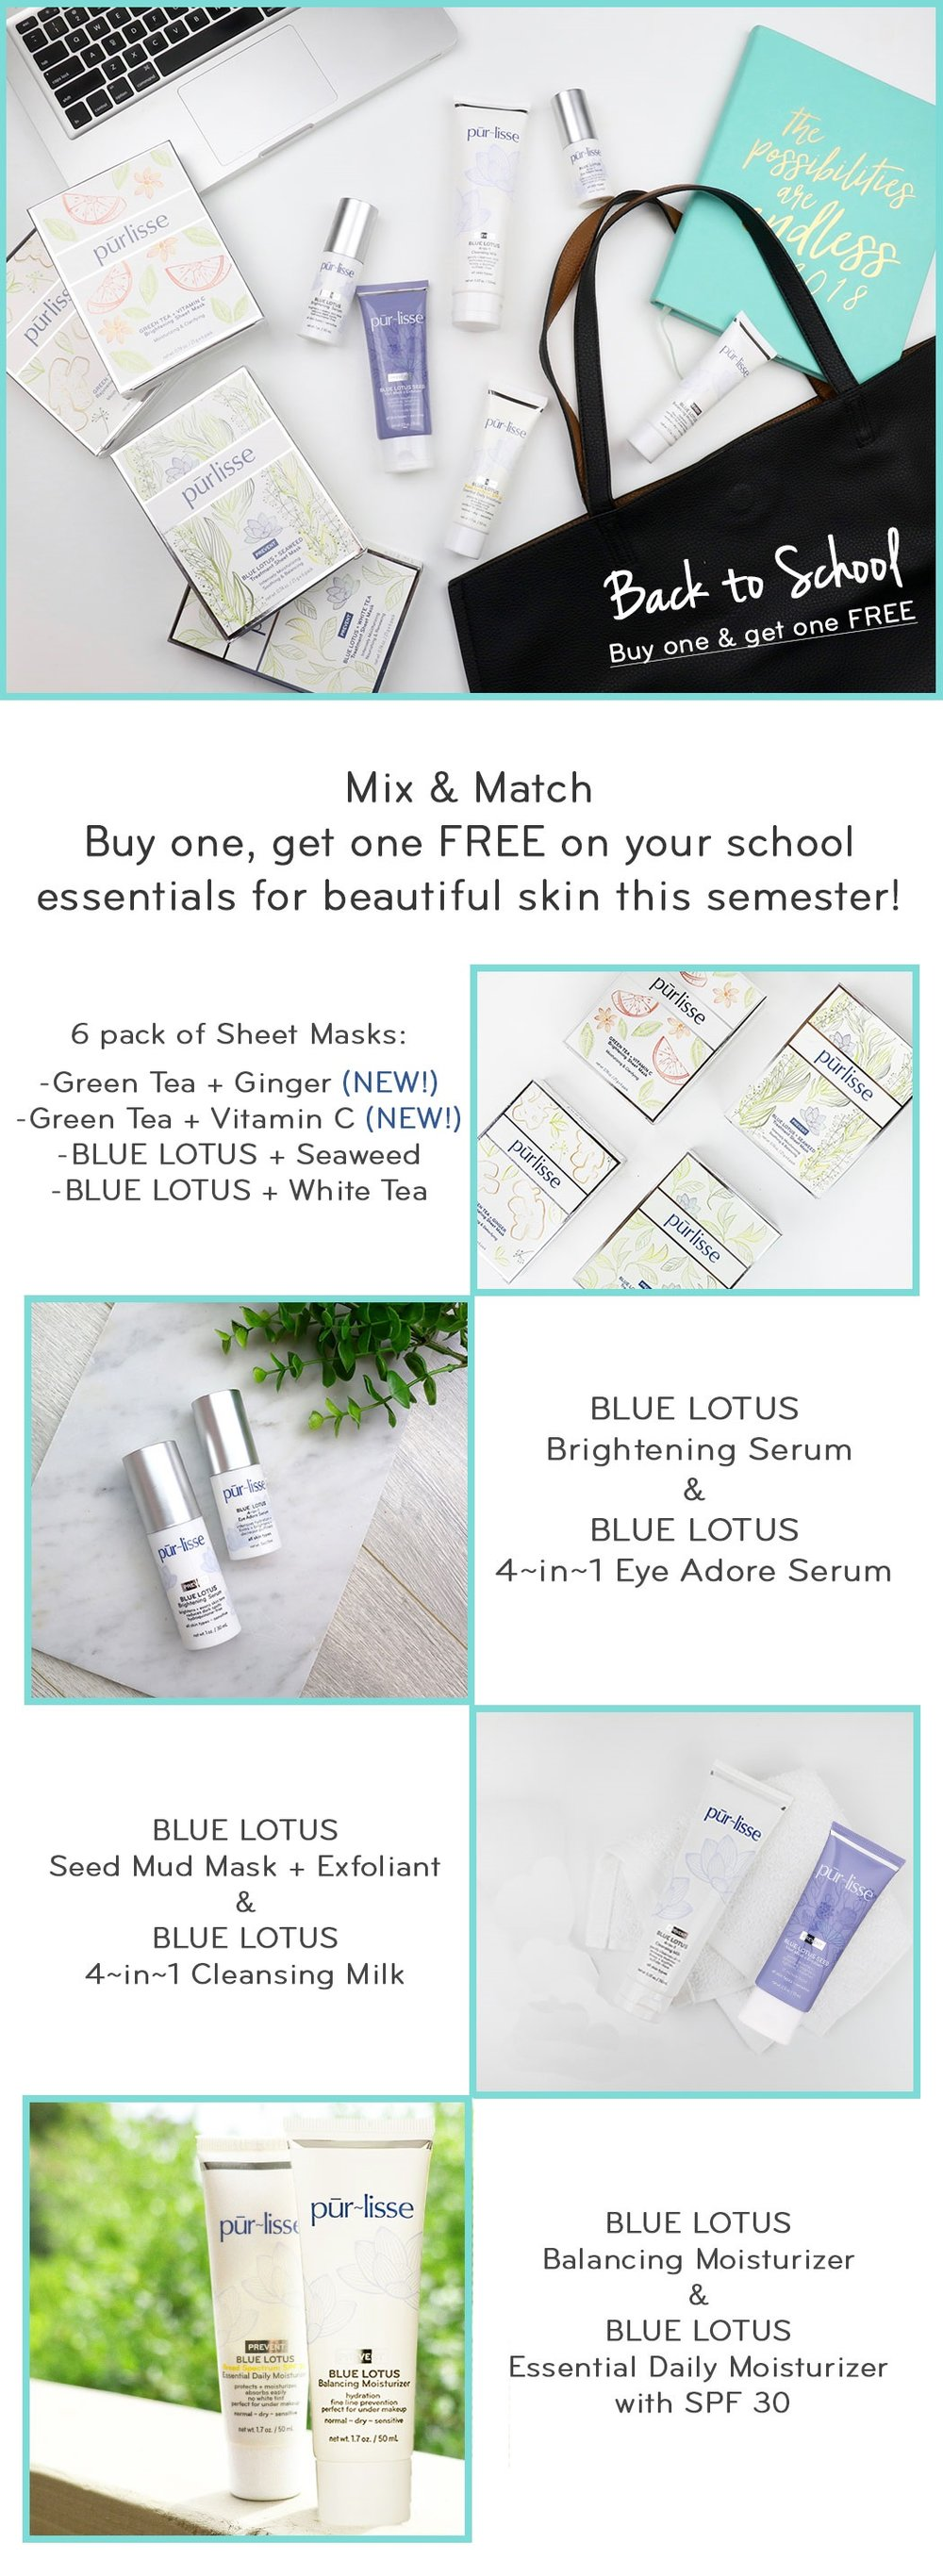 Purlisse ~  BOGO Free on Back to School  ~ Mix & Match | Get TWO for the price of ONE + Free deluxe sample with every order + Free US shipping with $50 order and free International shipping with $75 order